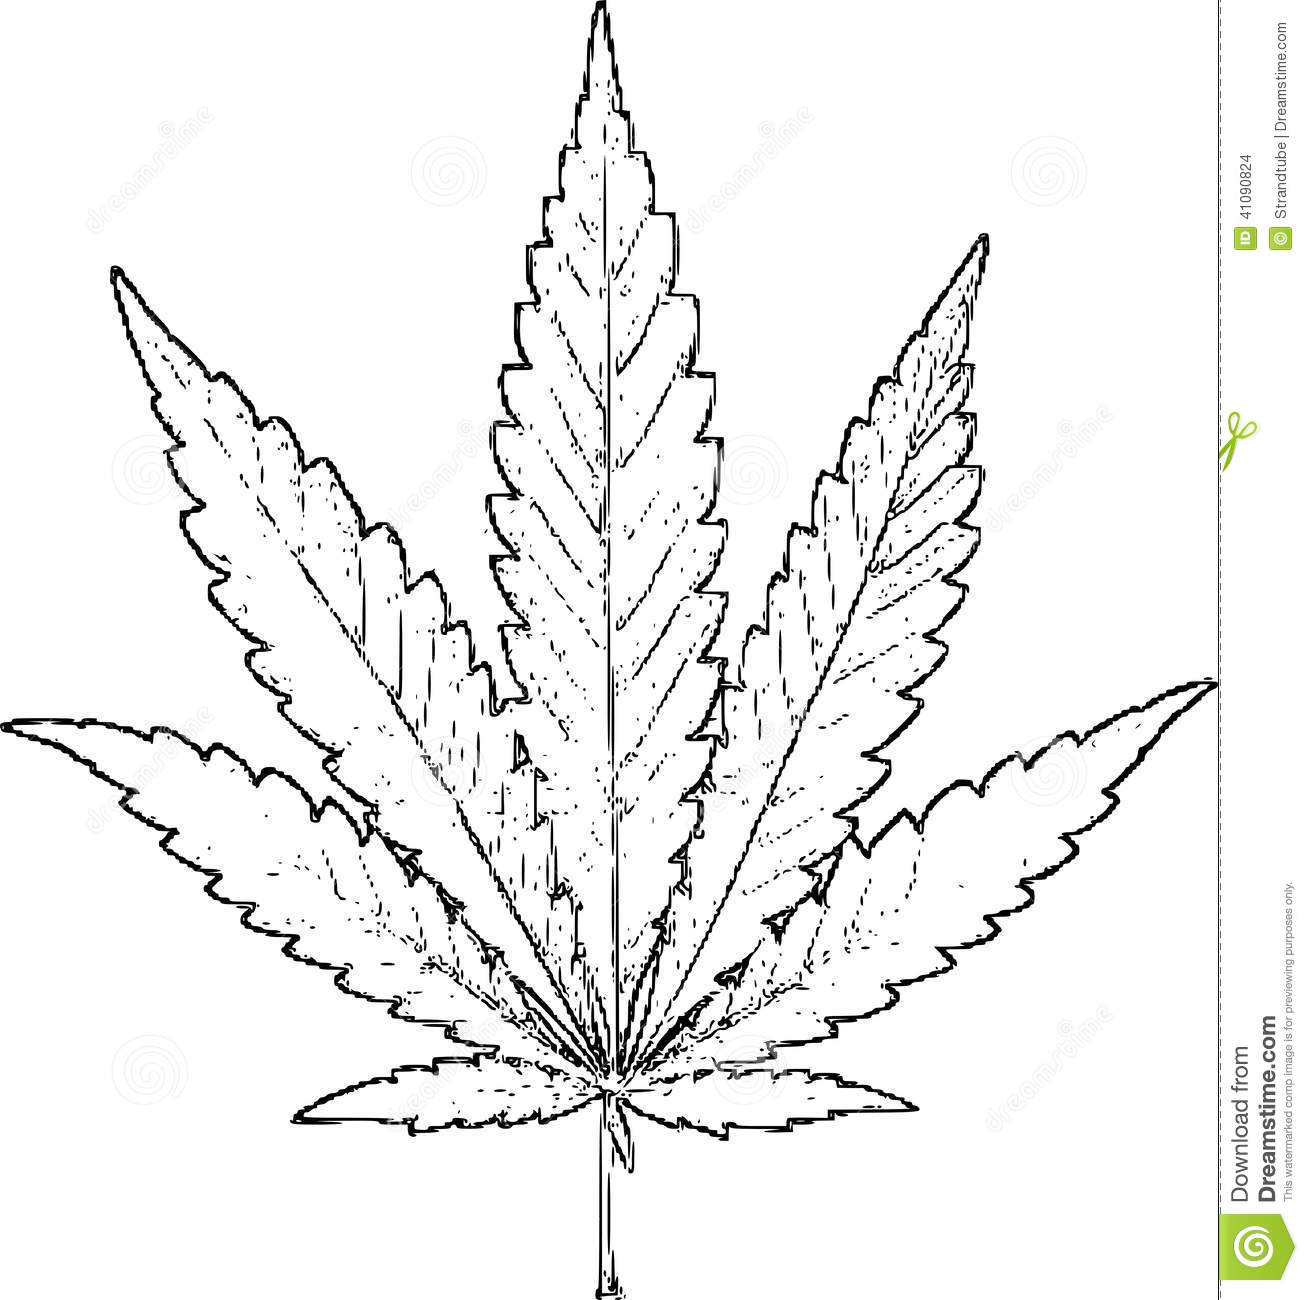 1308x1300 Best Weed Leaf Pencil Drawings